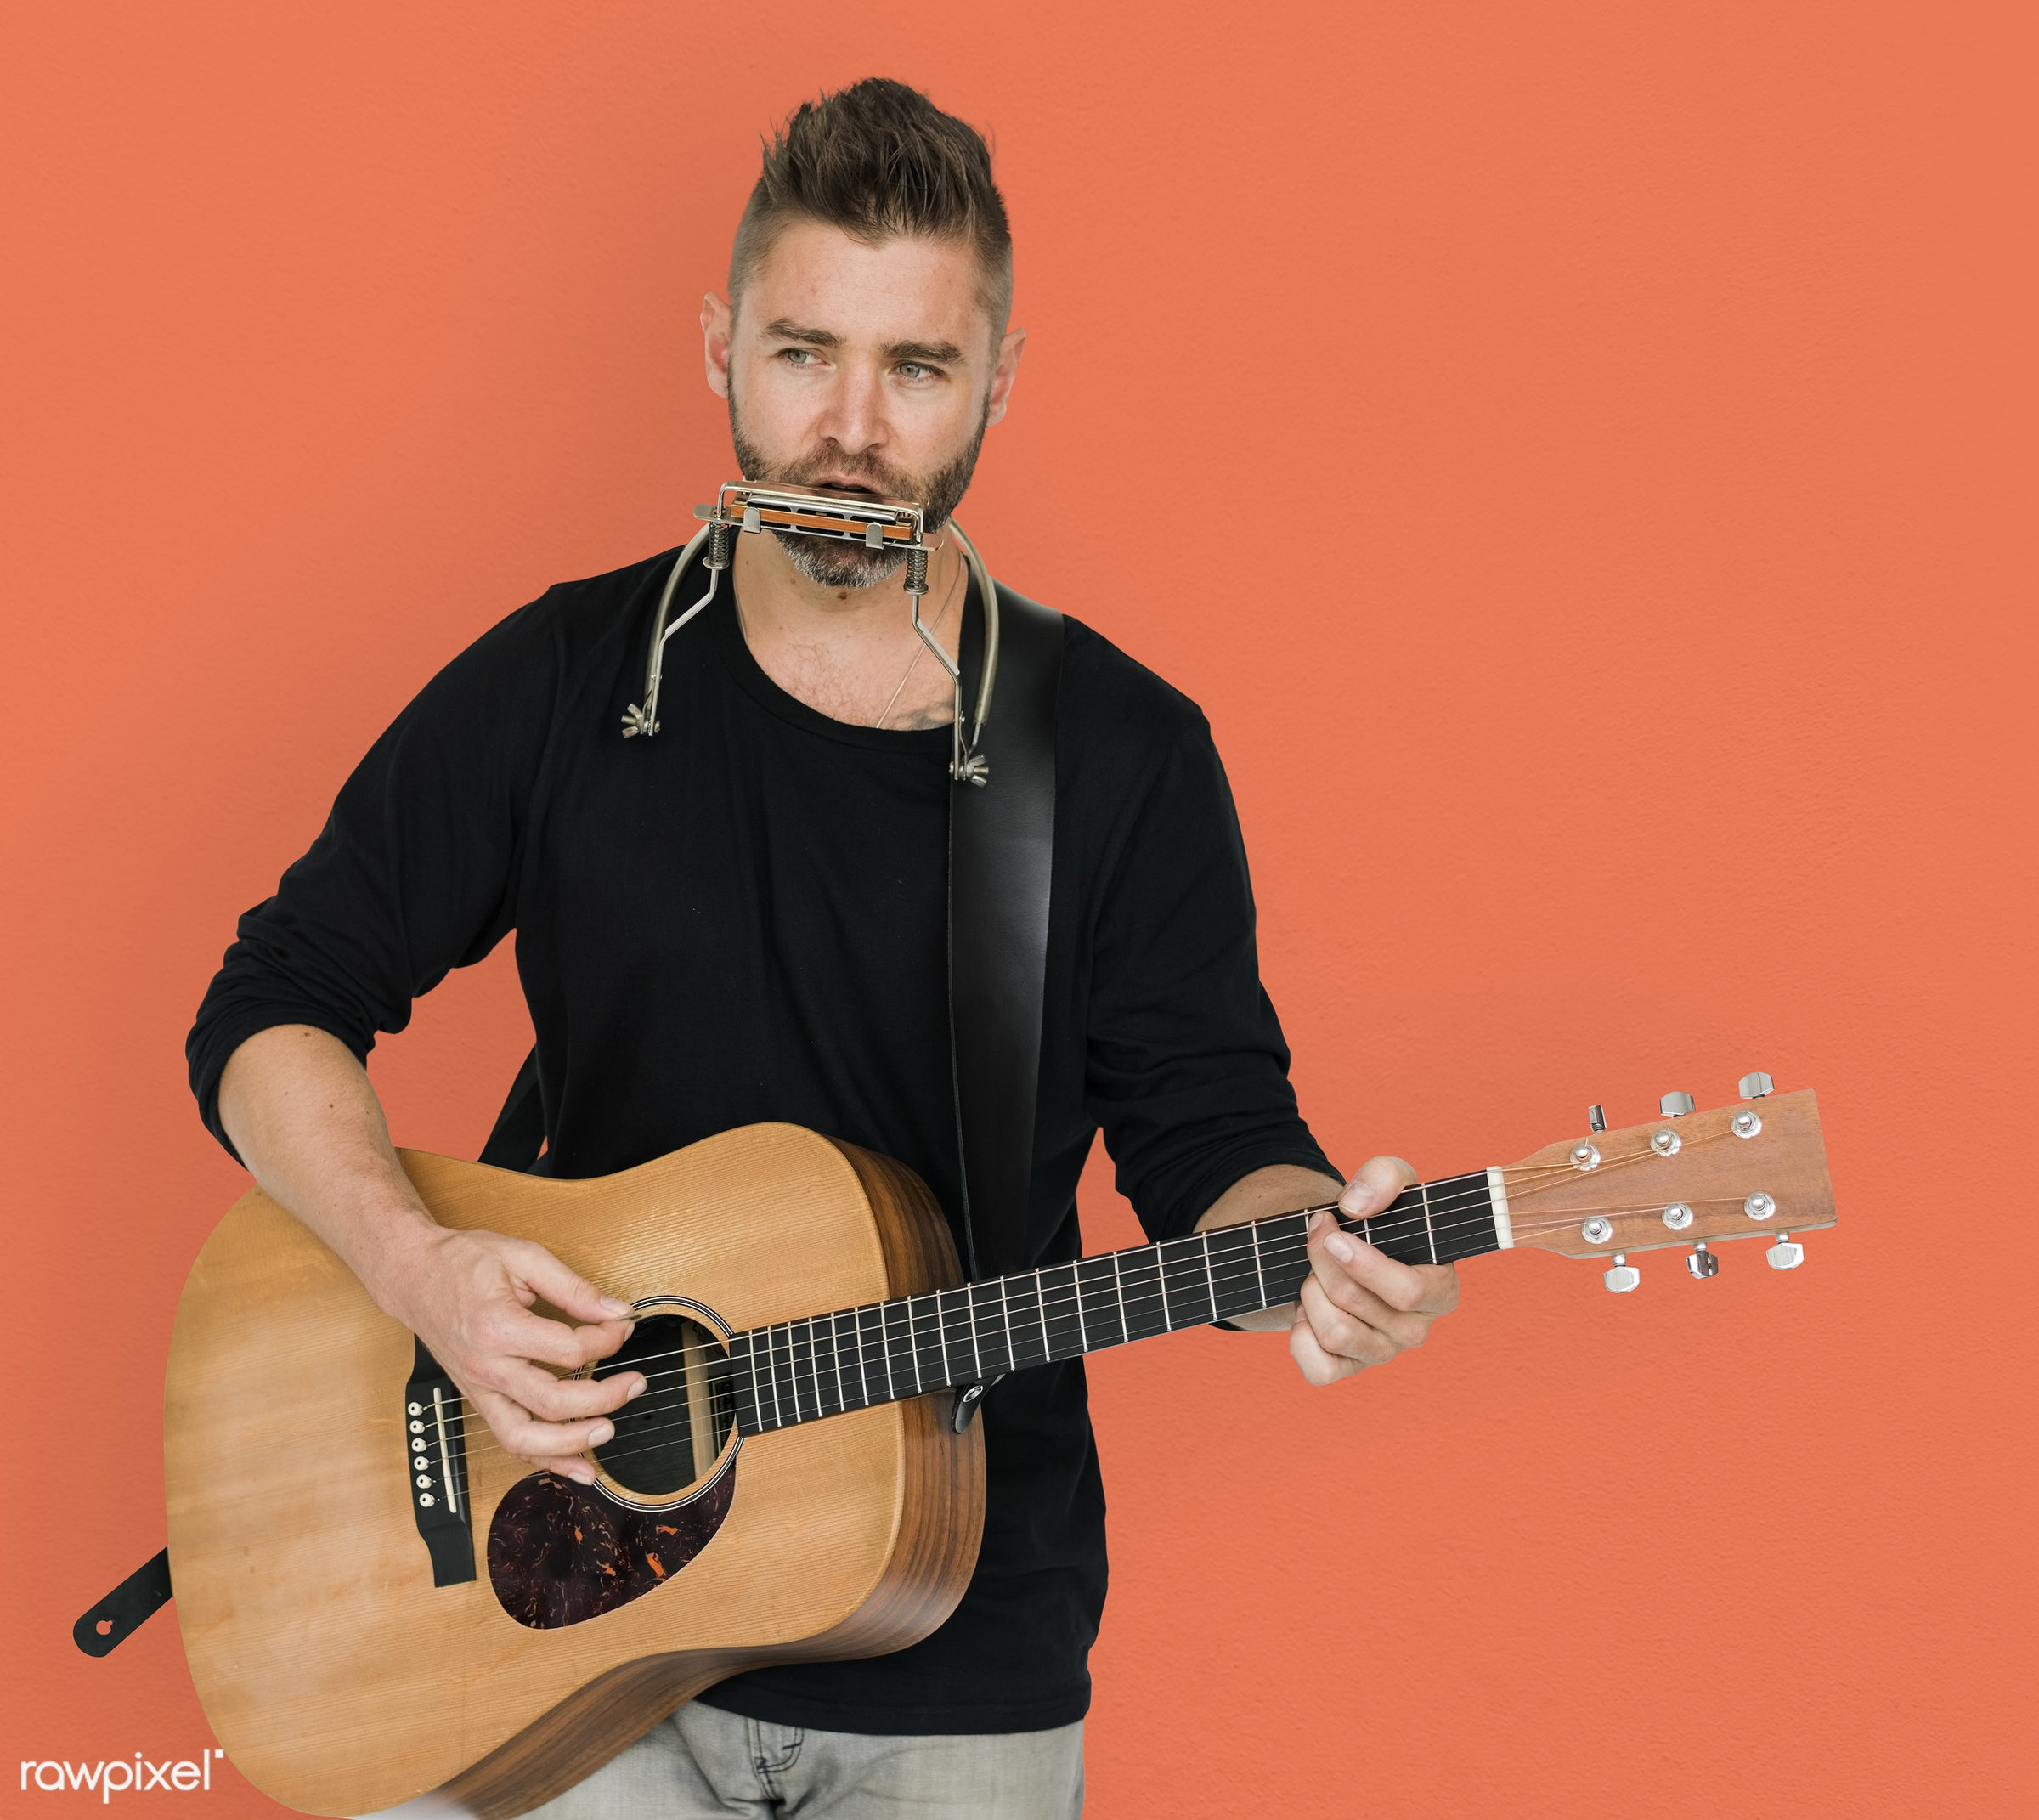 studio, expression, person, single, playing guitar, people, caucasian, curious, solo, lifestyle, musician, spiky, alone,...